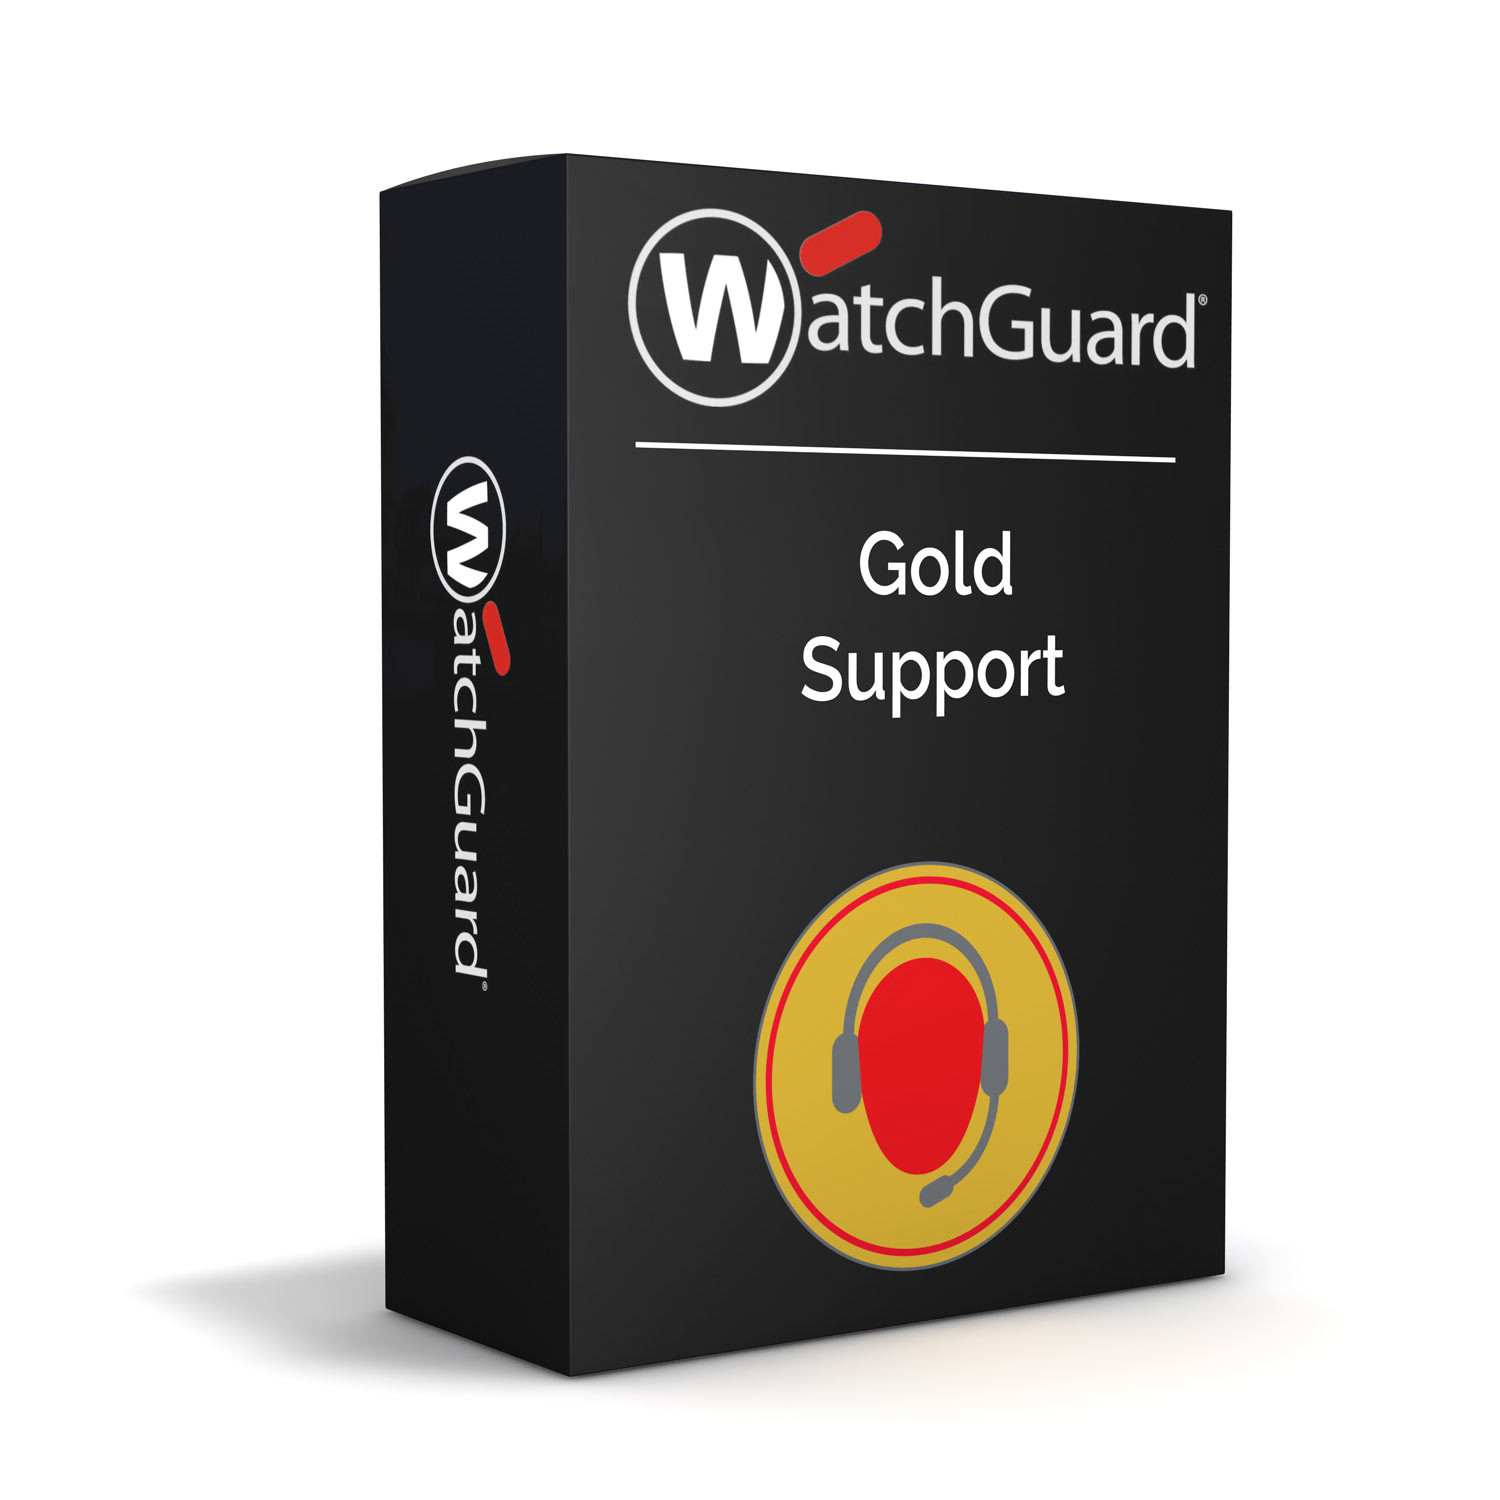 WatchGuard Gold Support Renewal/Upgrade 3-yr for Firebox T80